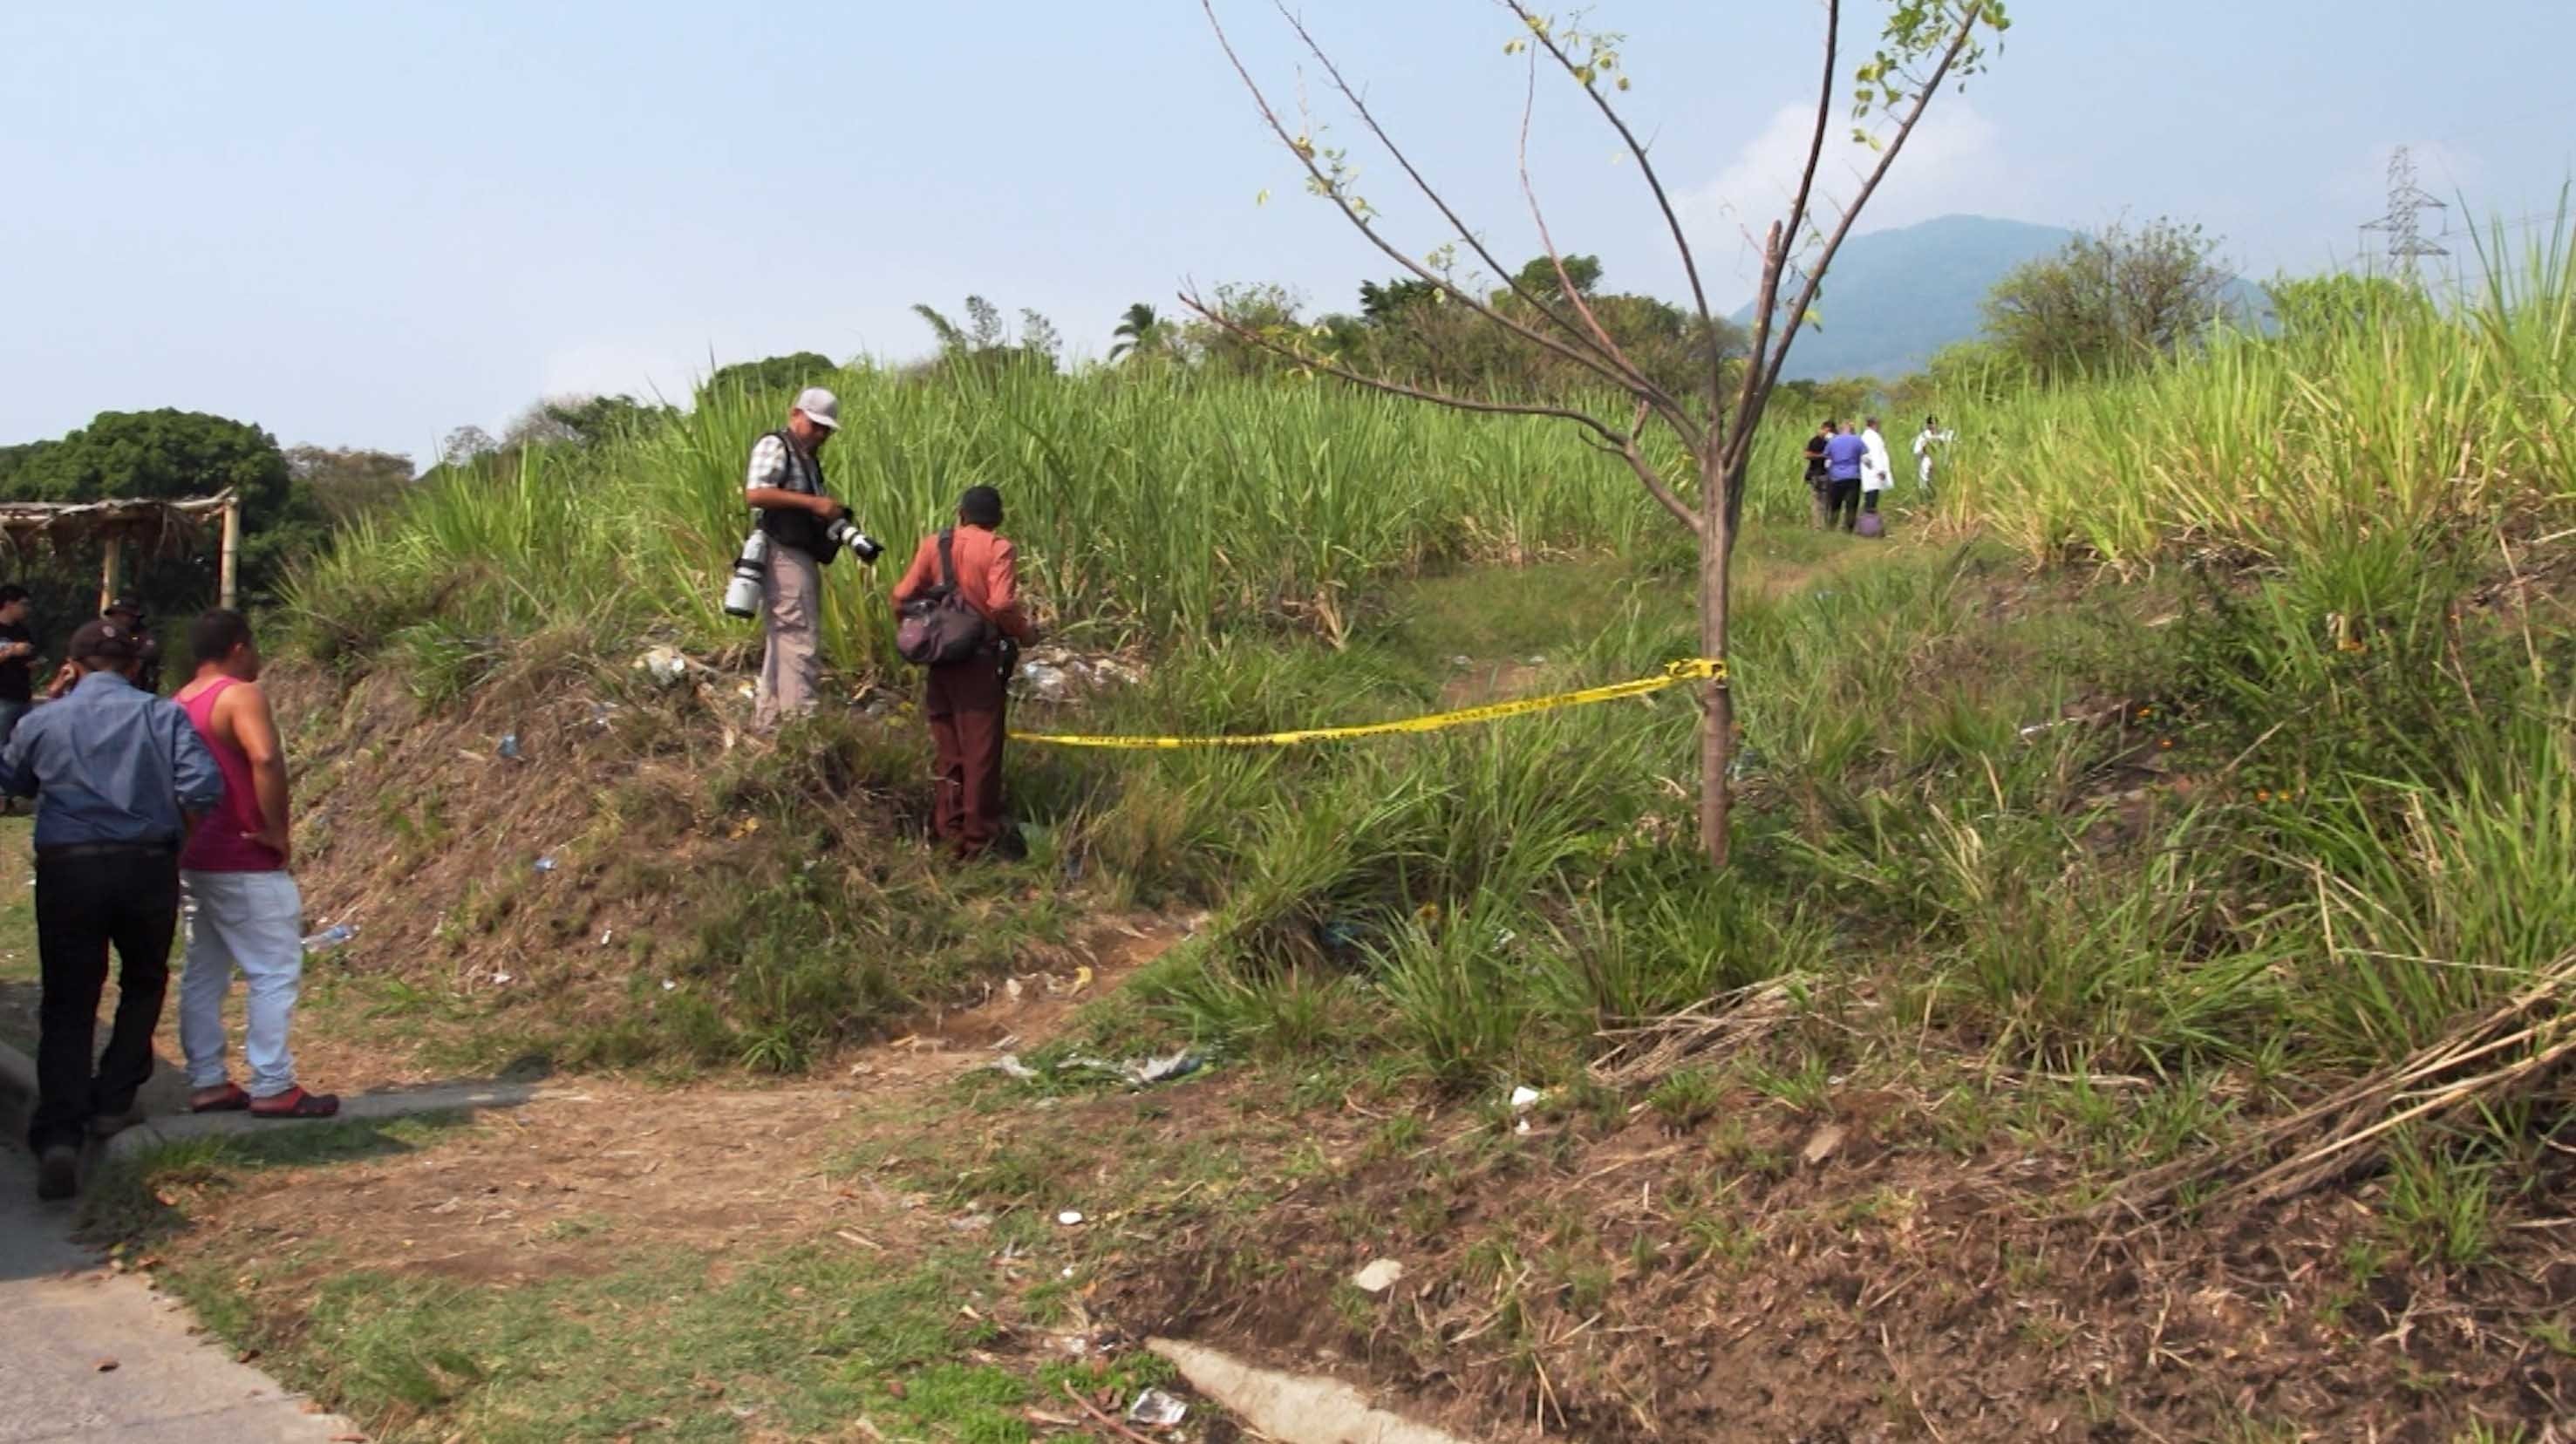 The scene at the side of a highway where Jennifer Landaverde, 22, was found dead.